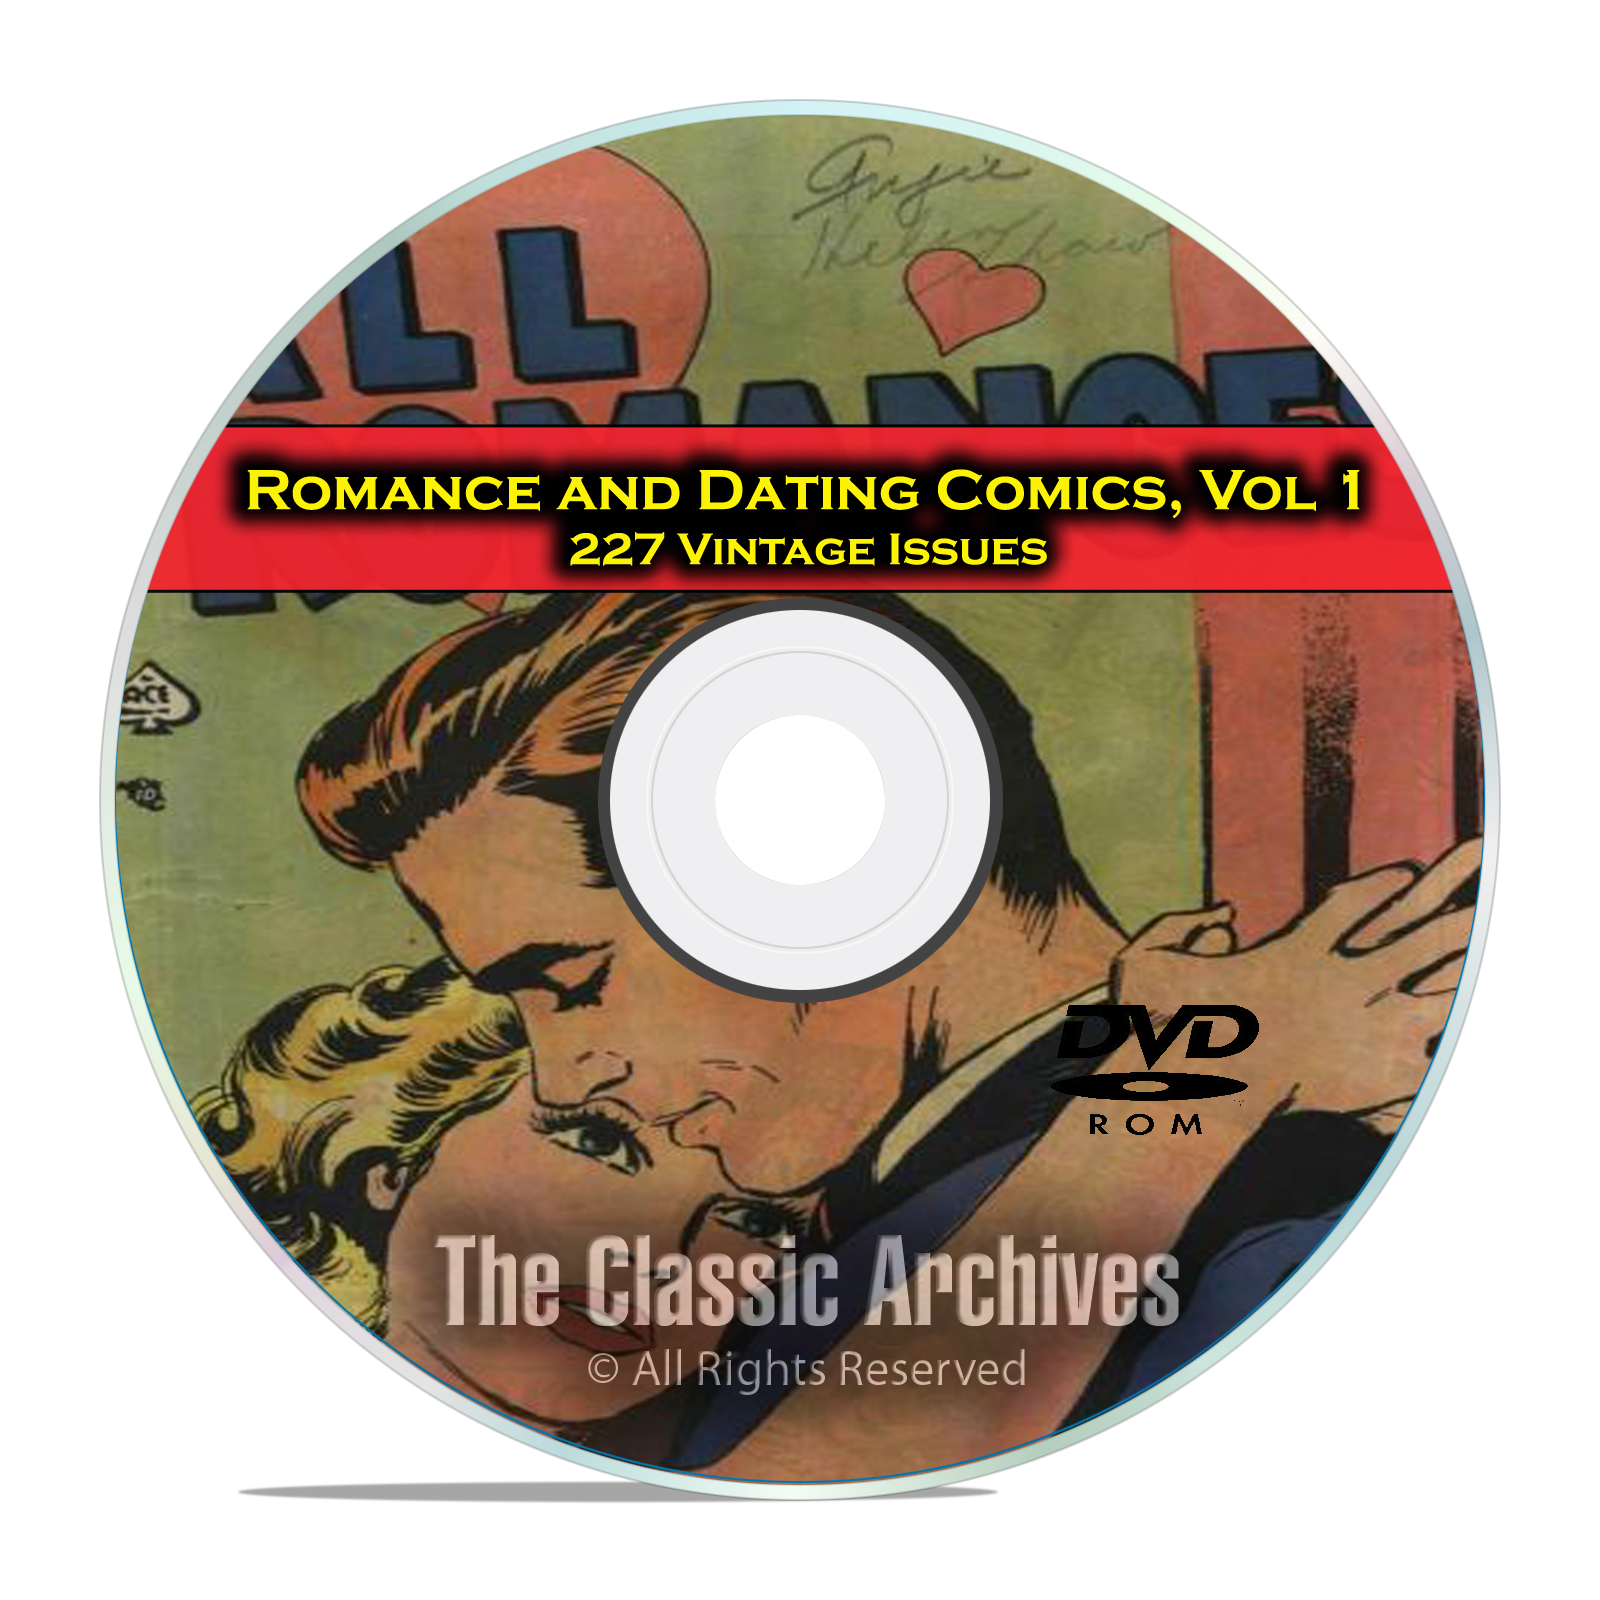 Romance, Love, Dating Comics, Vol 1, All Romances, Brides, Golden Age DVD